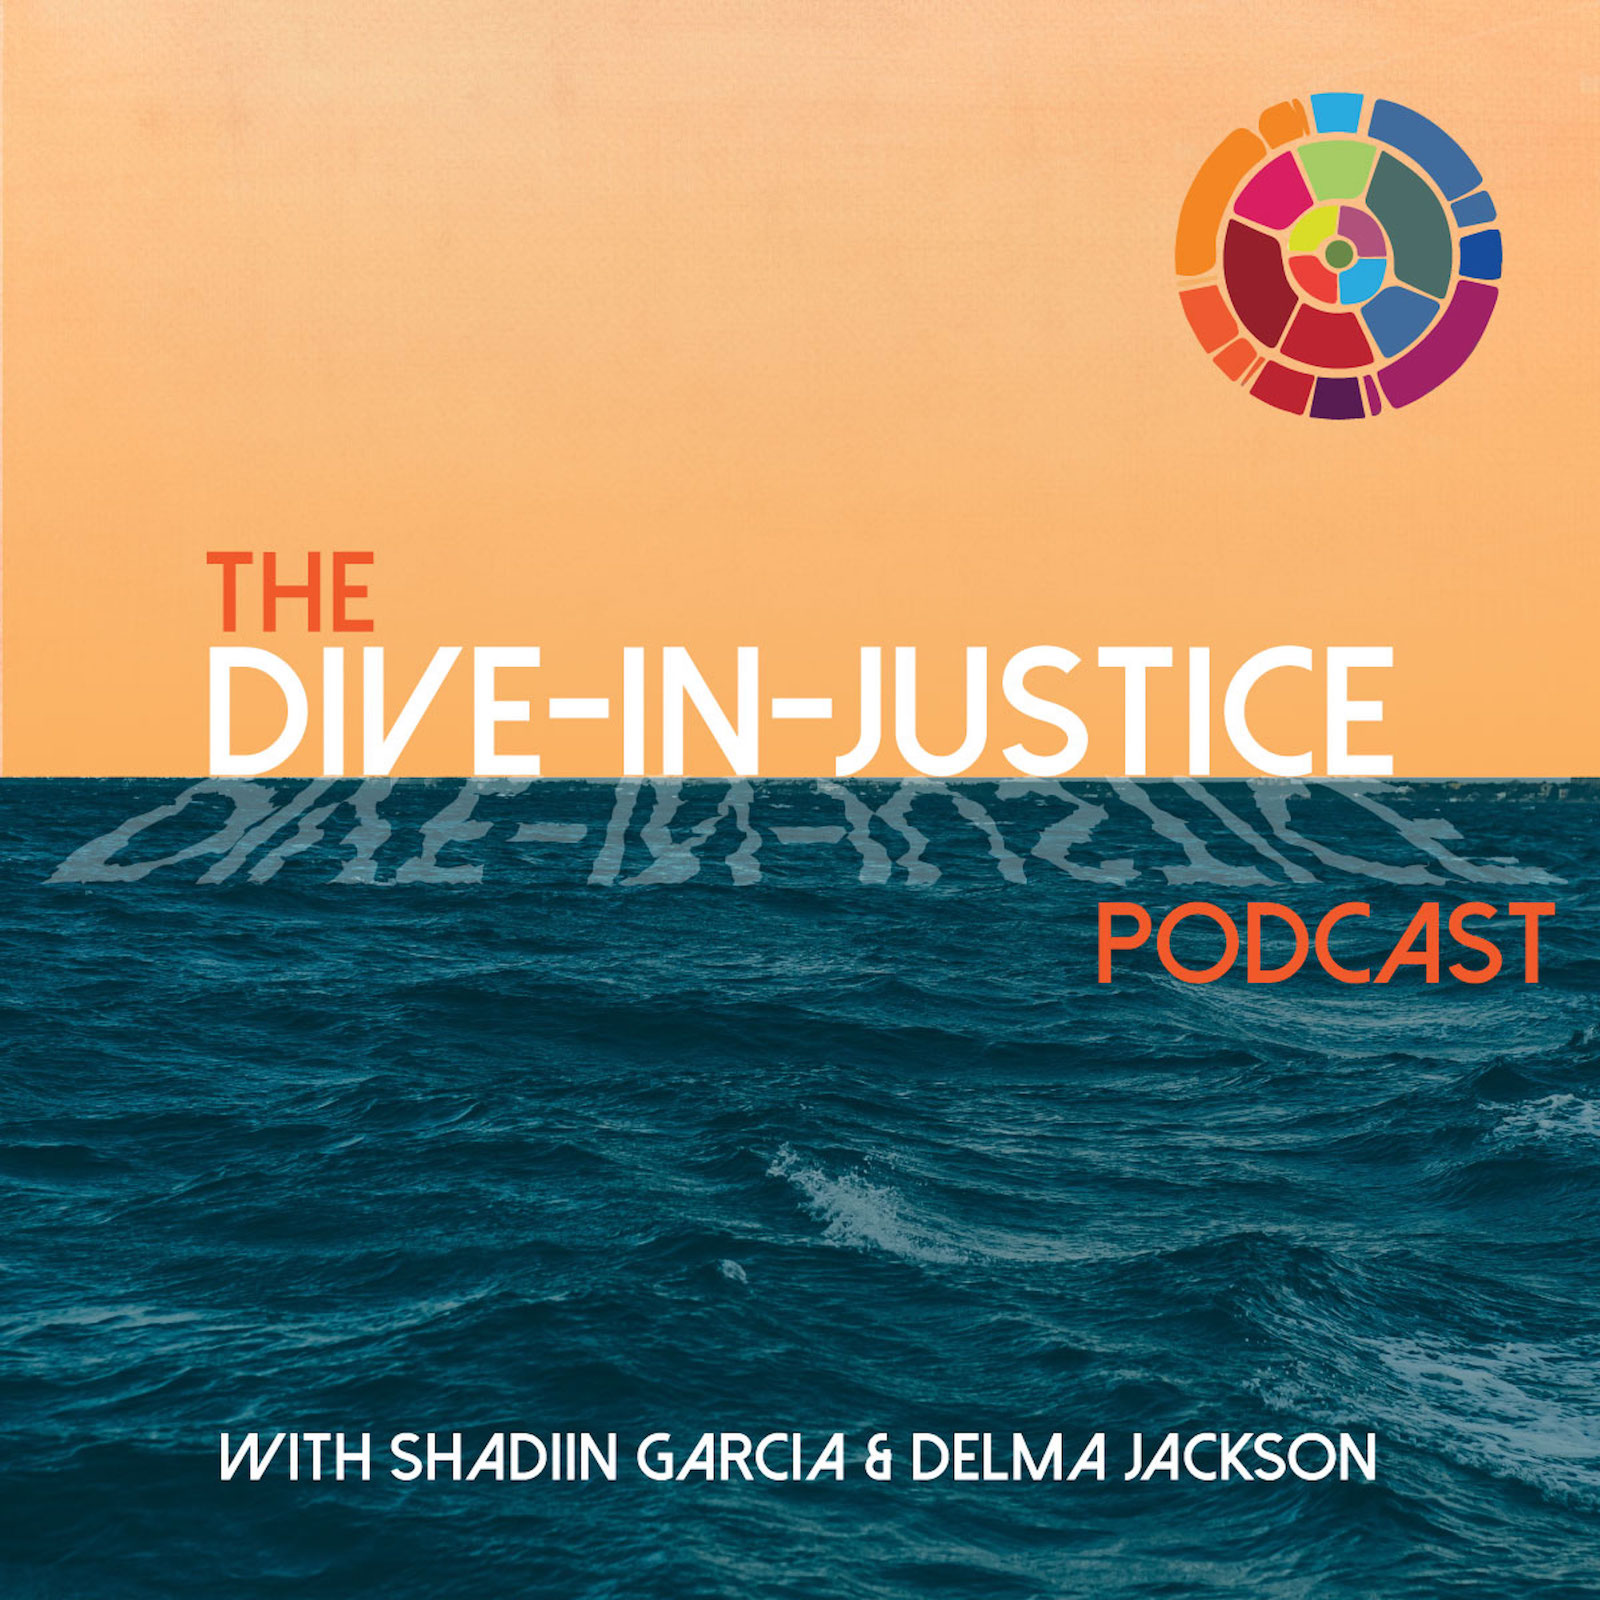 Artwork for podcast Dive-In-Justice